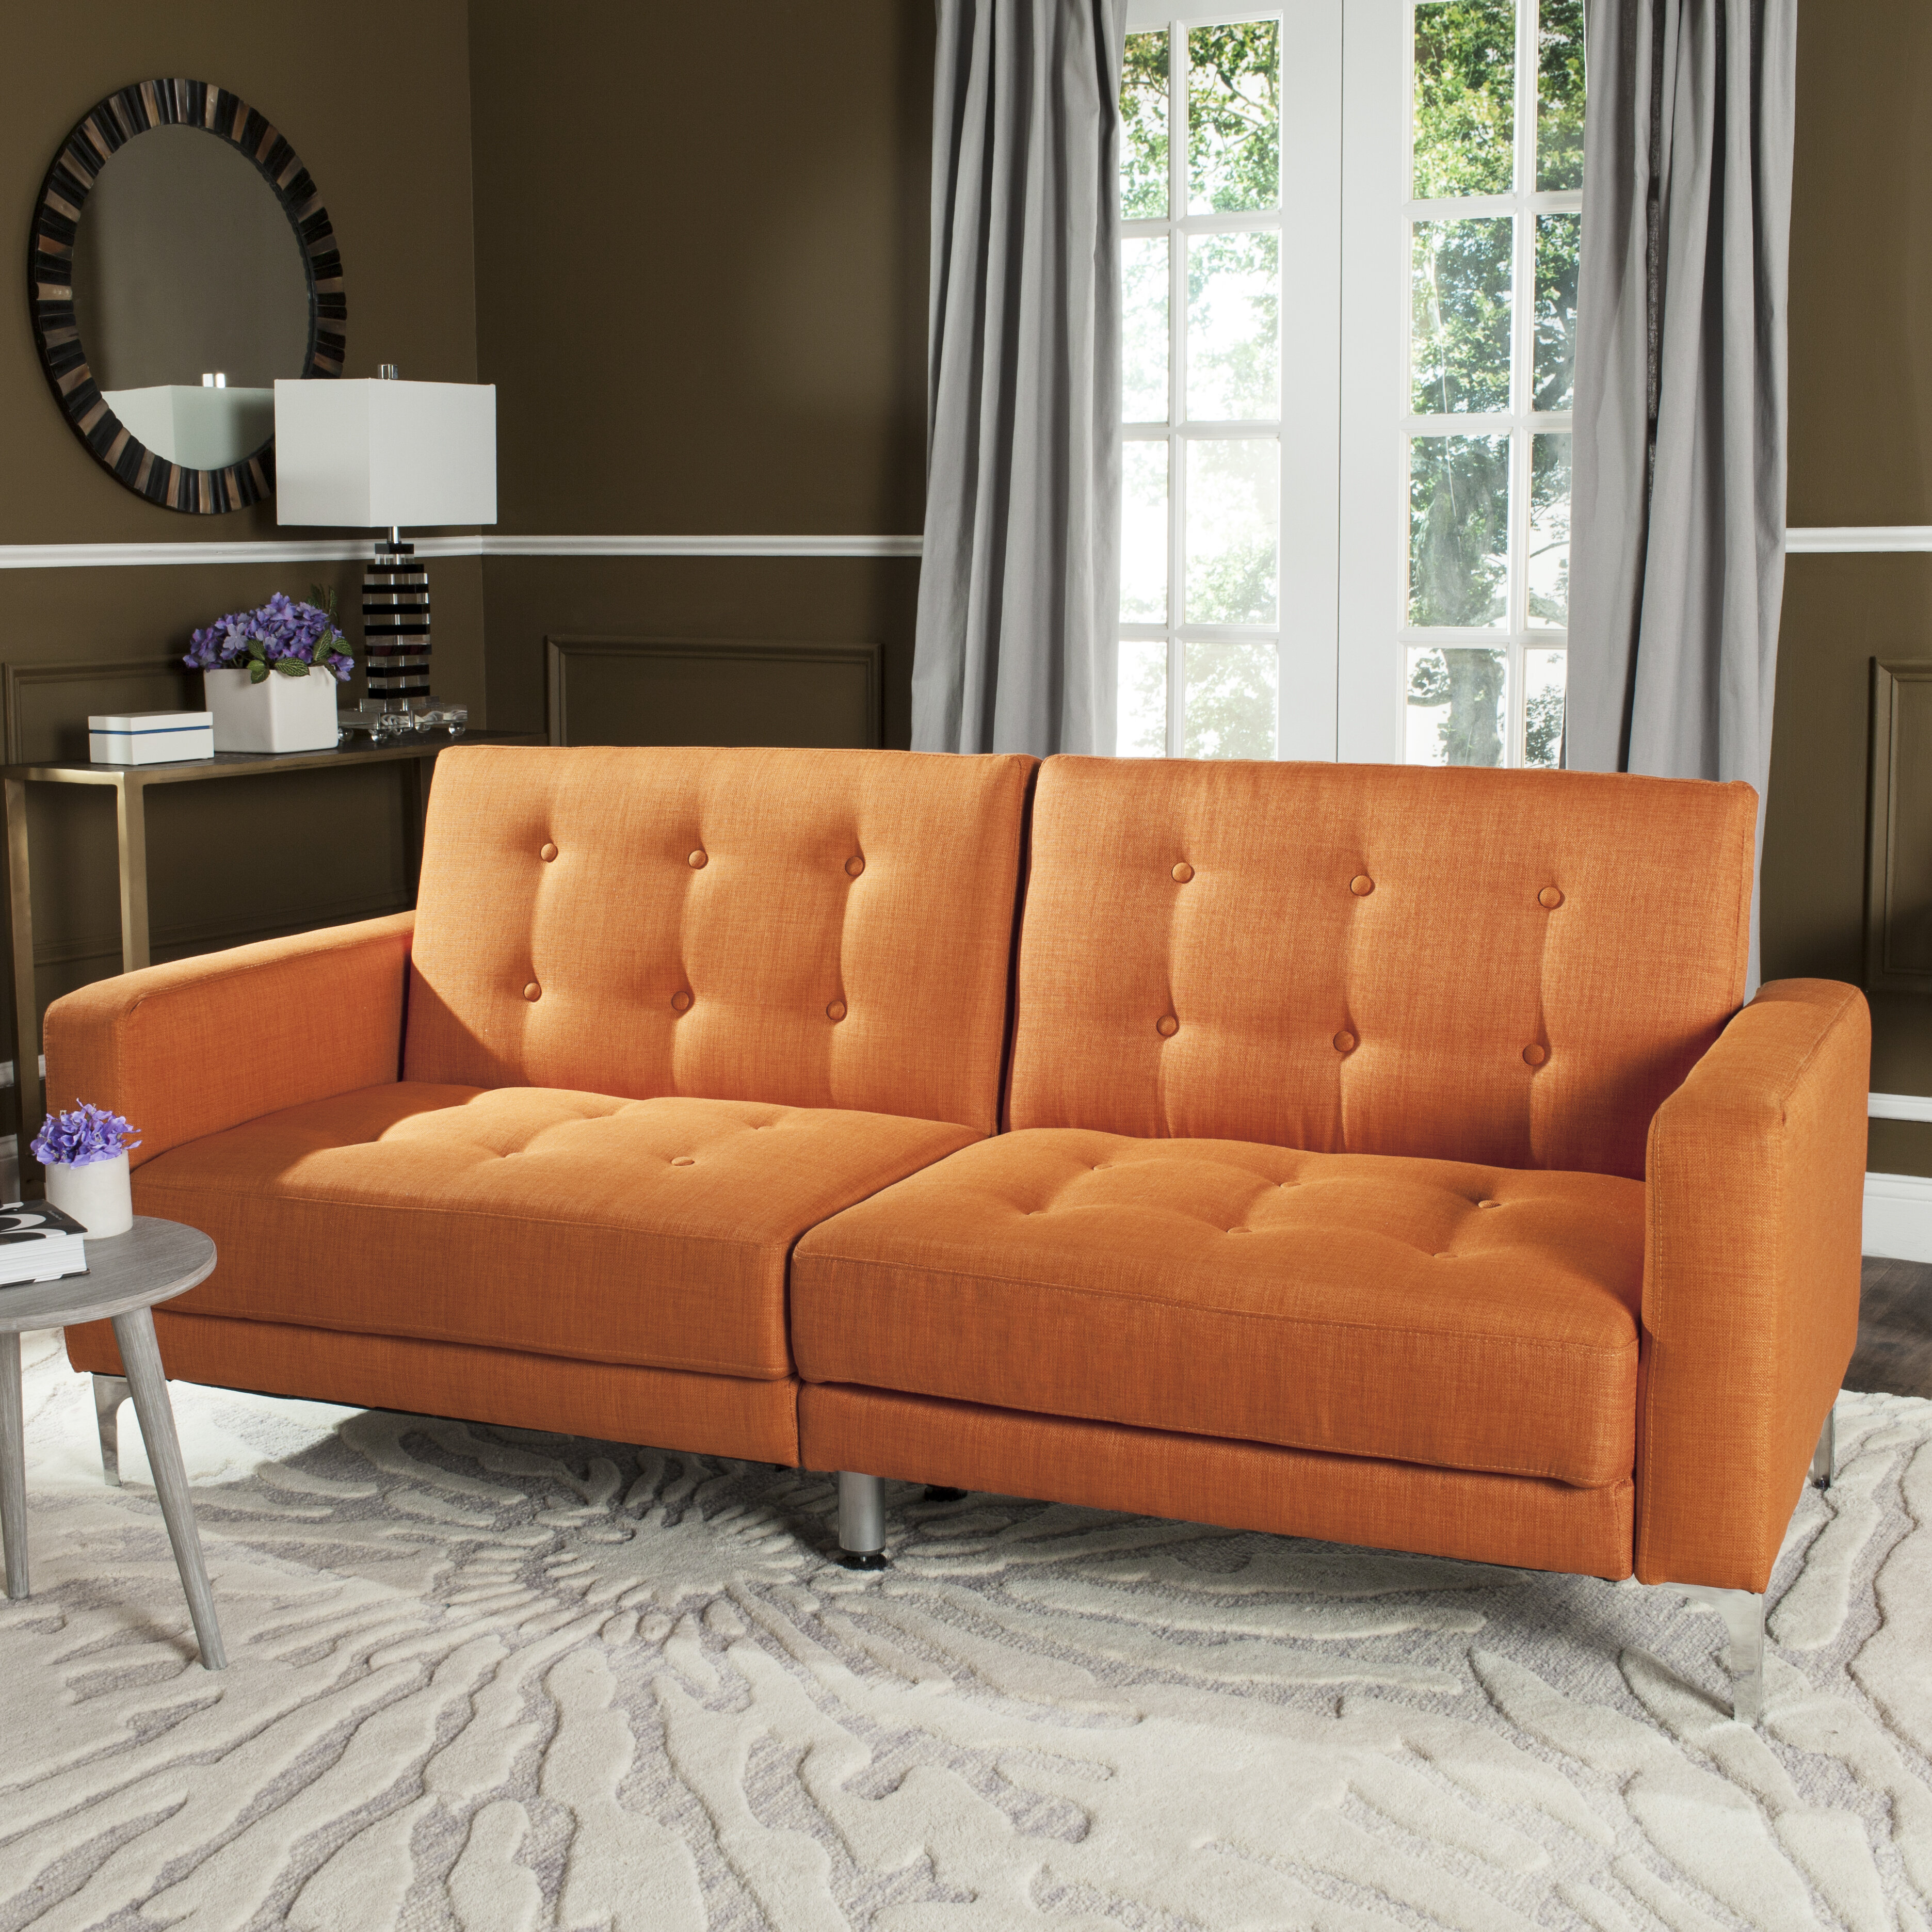 Assembly Required Sofa | Wayfair